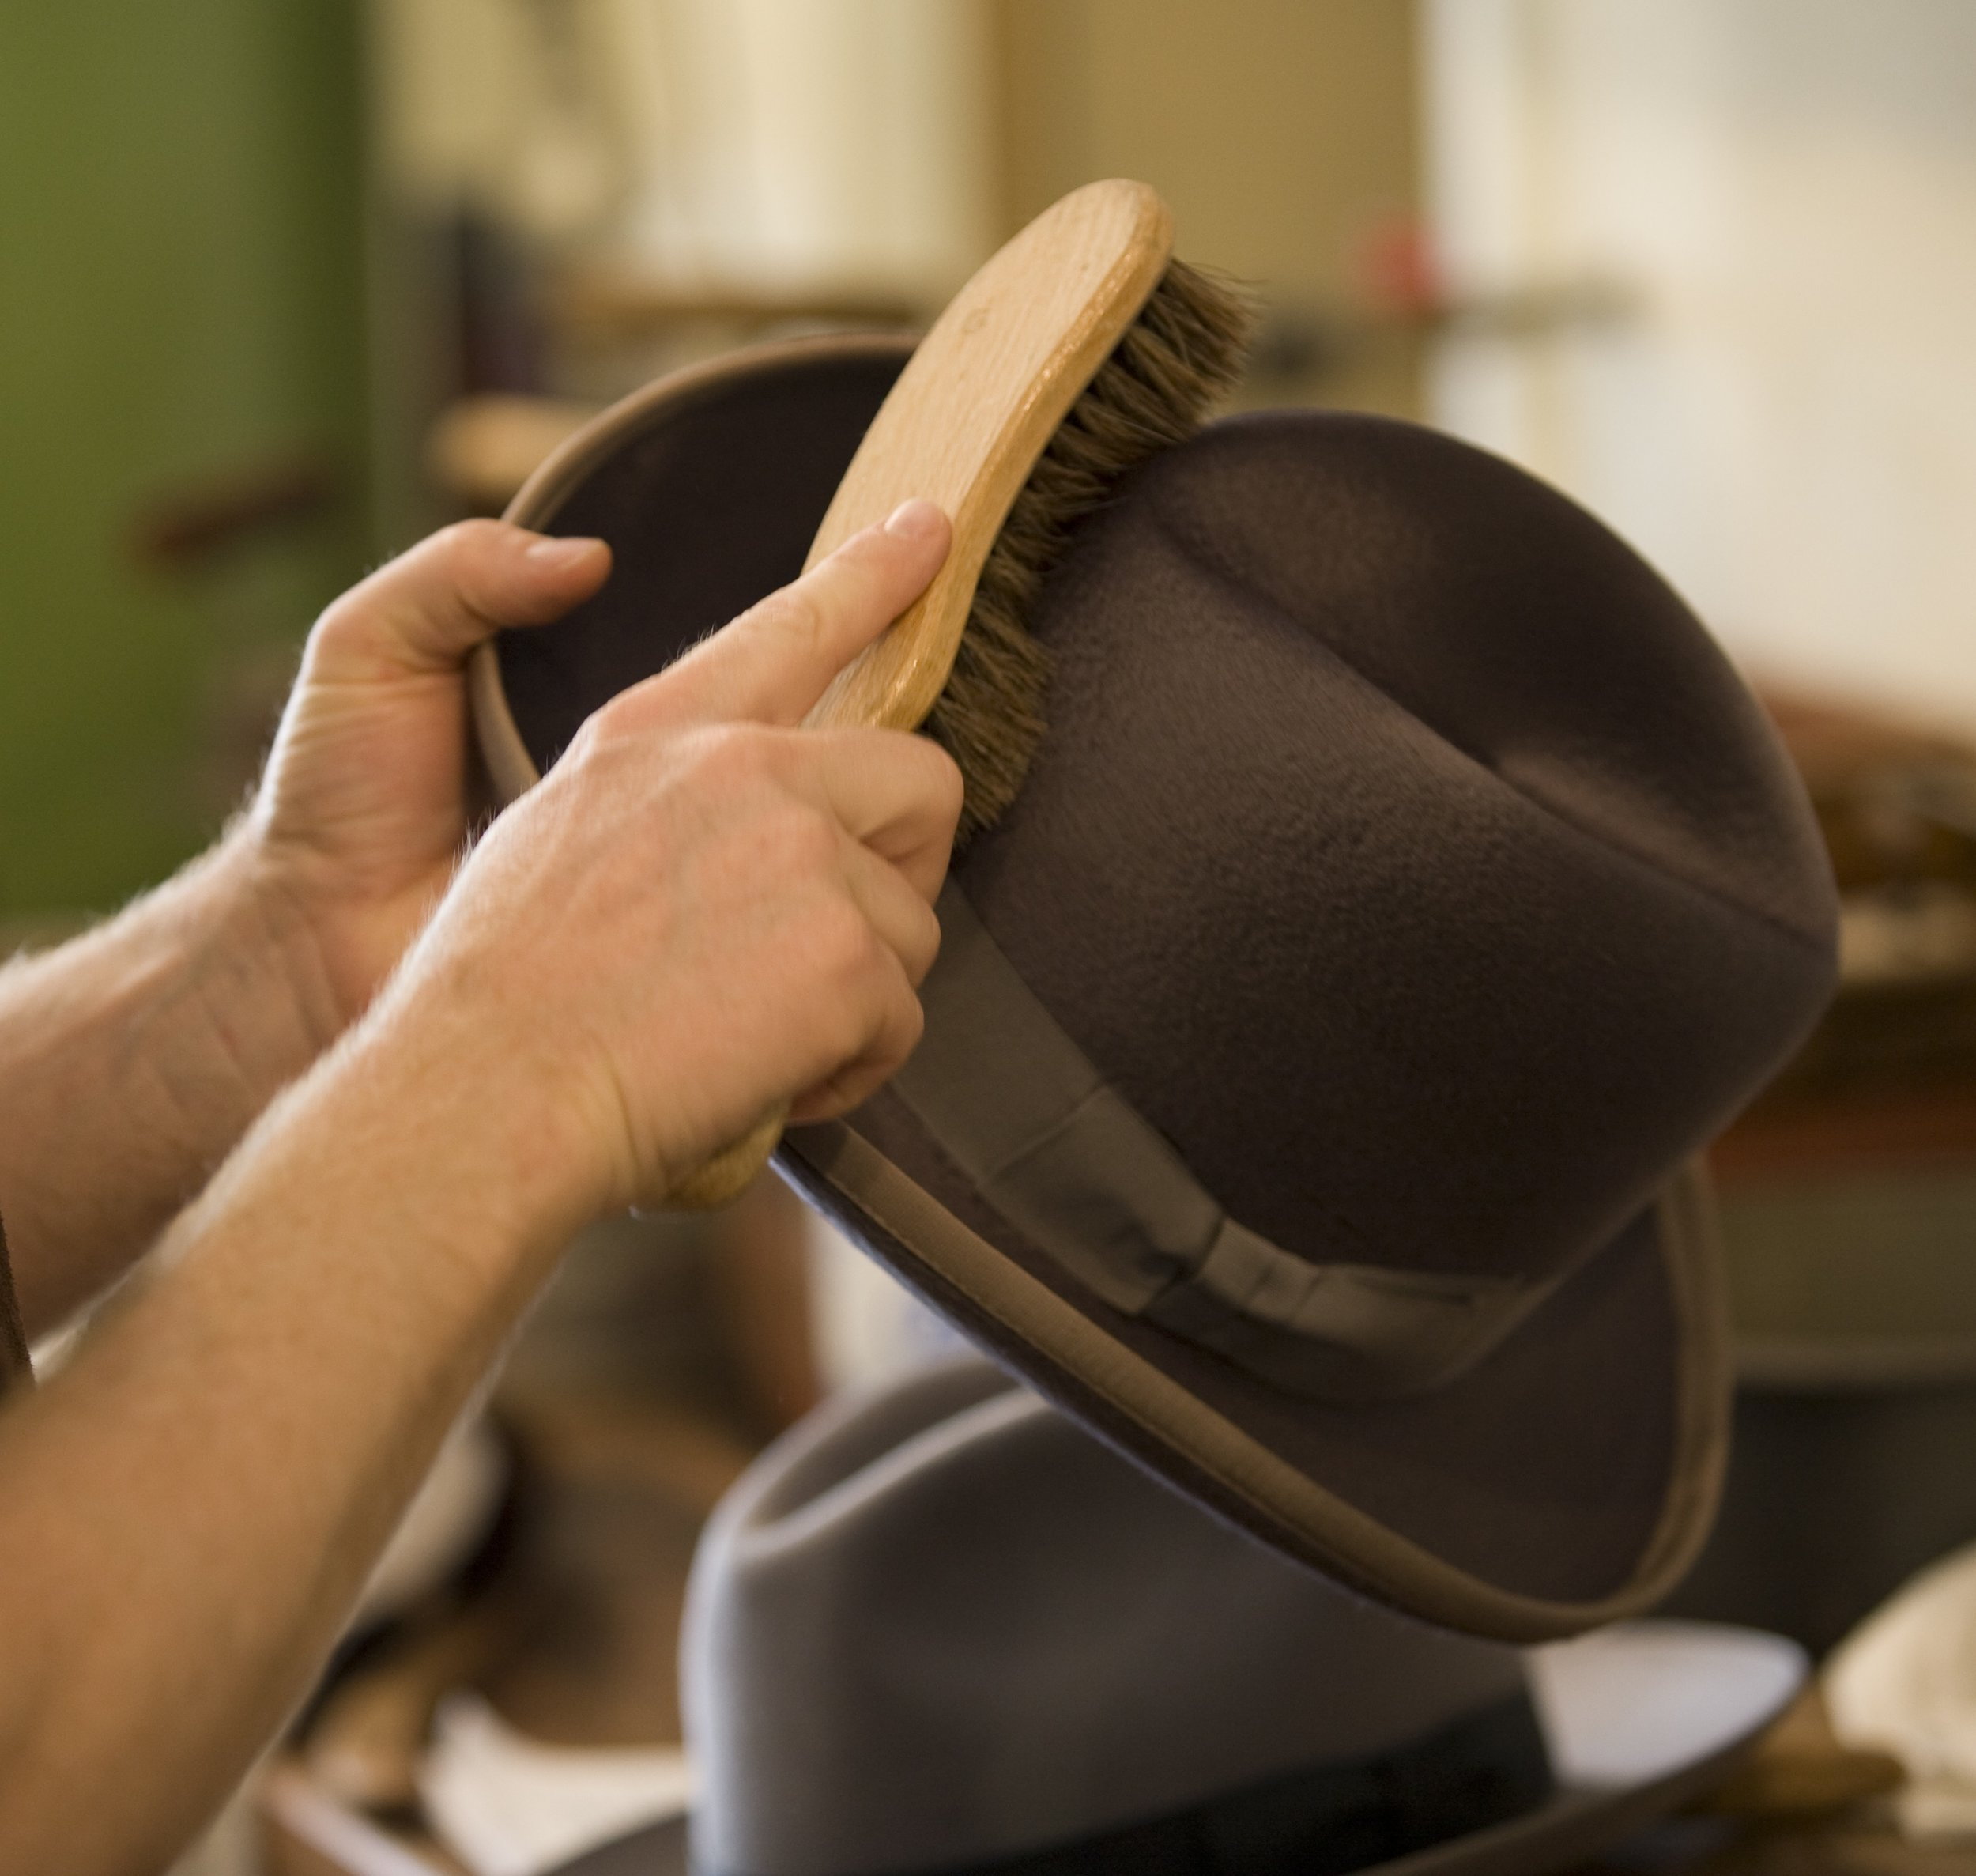 7.brushing grey hat.jpg